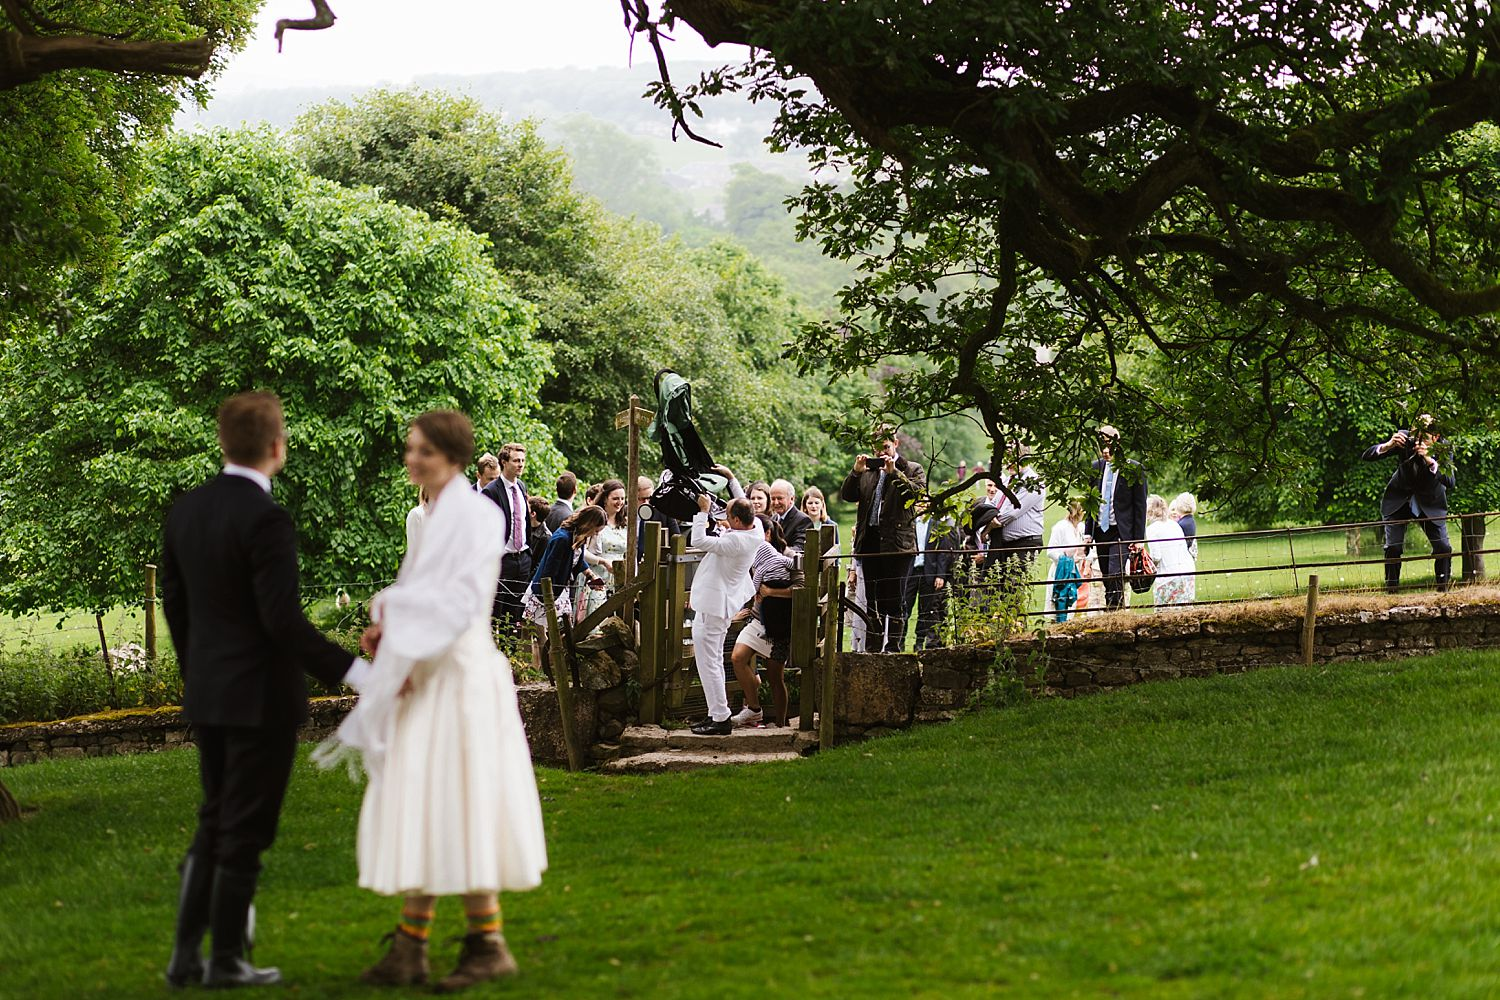 Bride and groom wait for wedding guests to come through kissing gate at wedding at Park House Barn in Heversham Cumbria